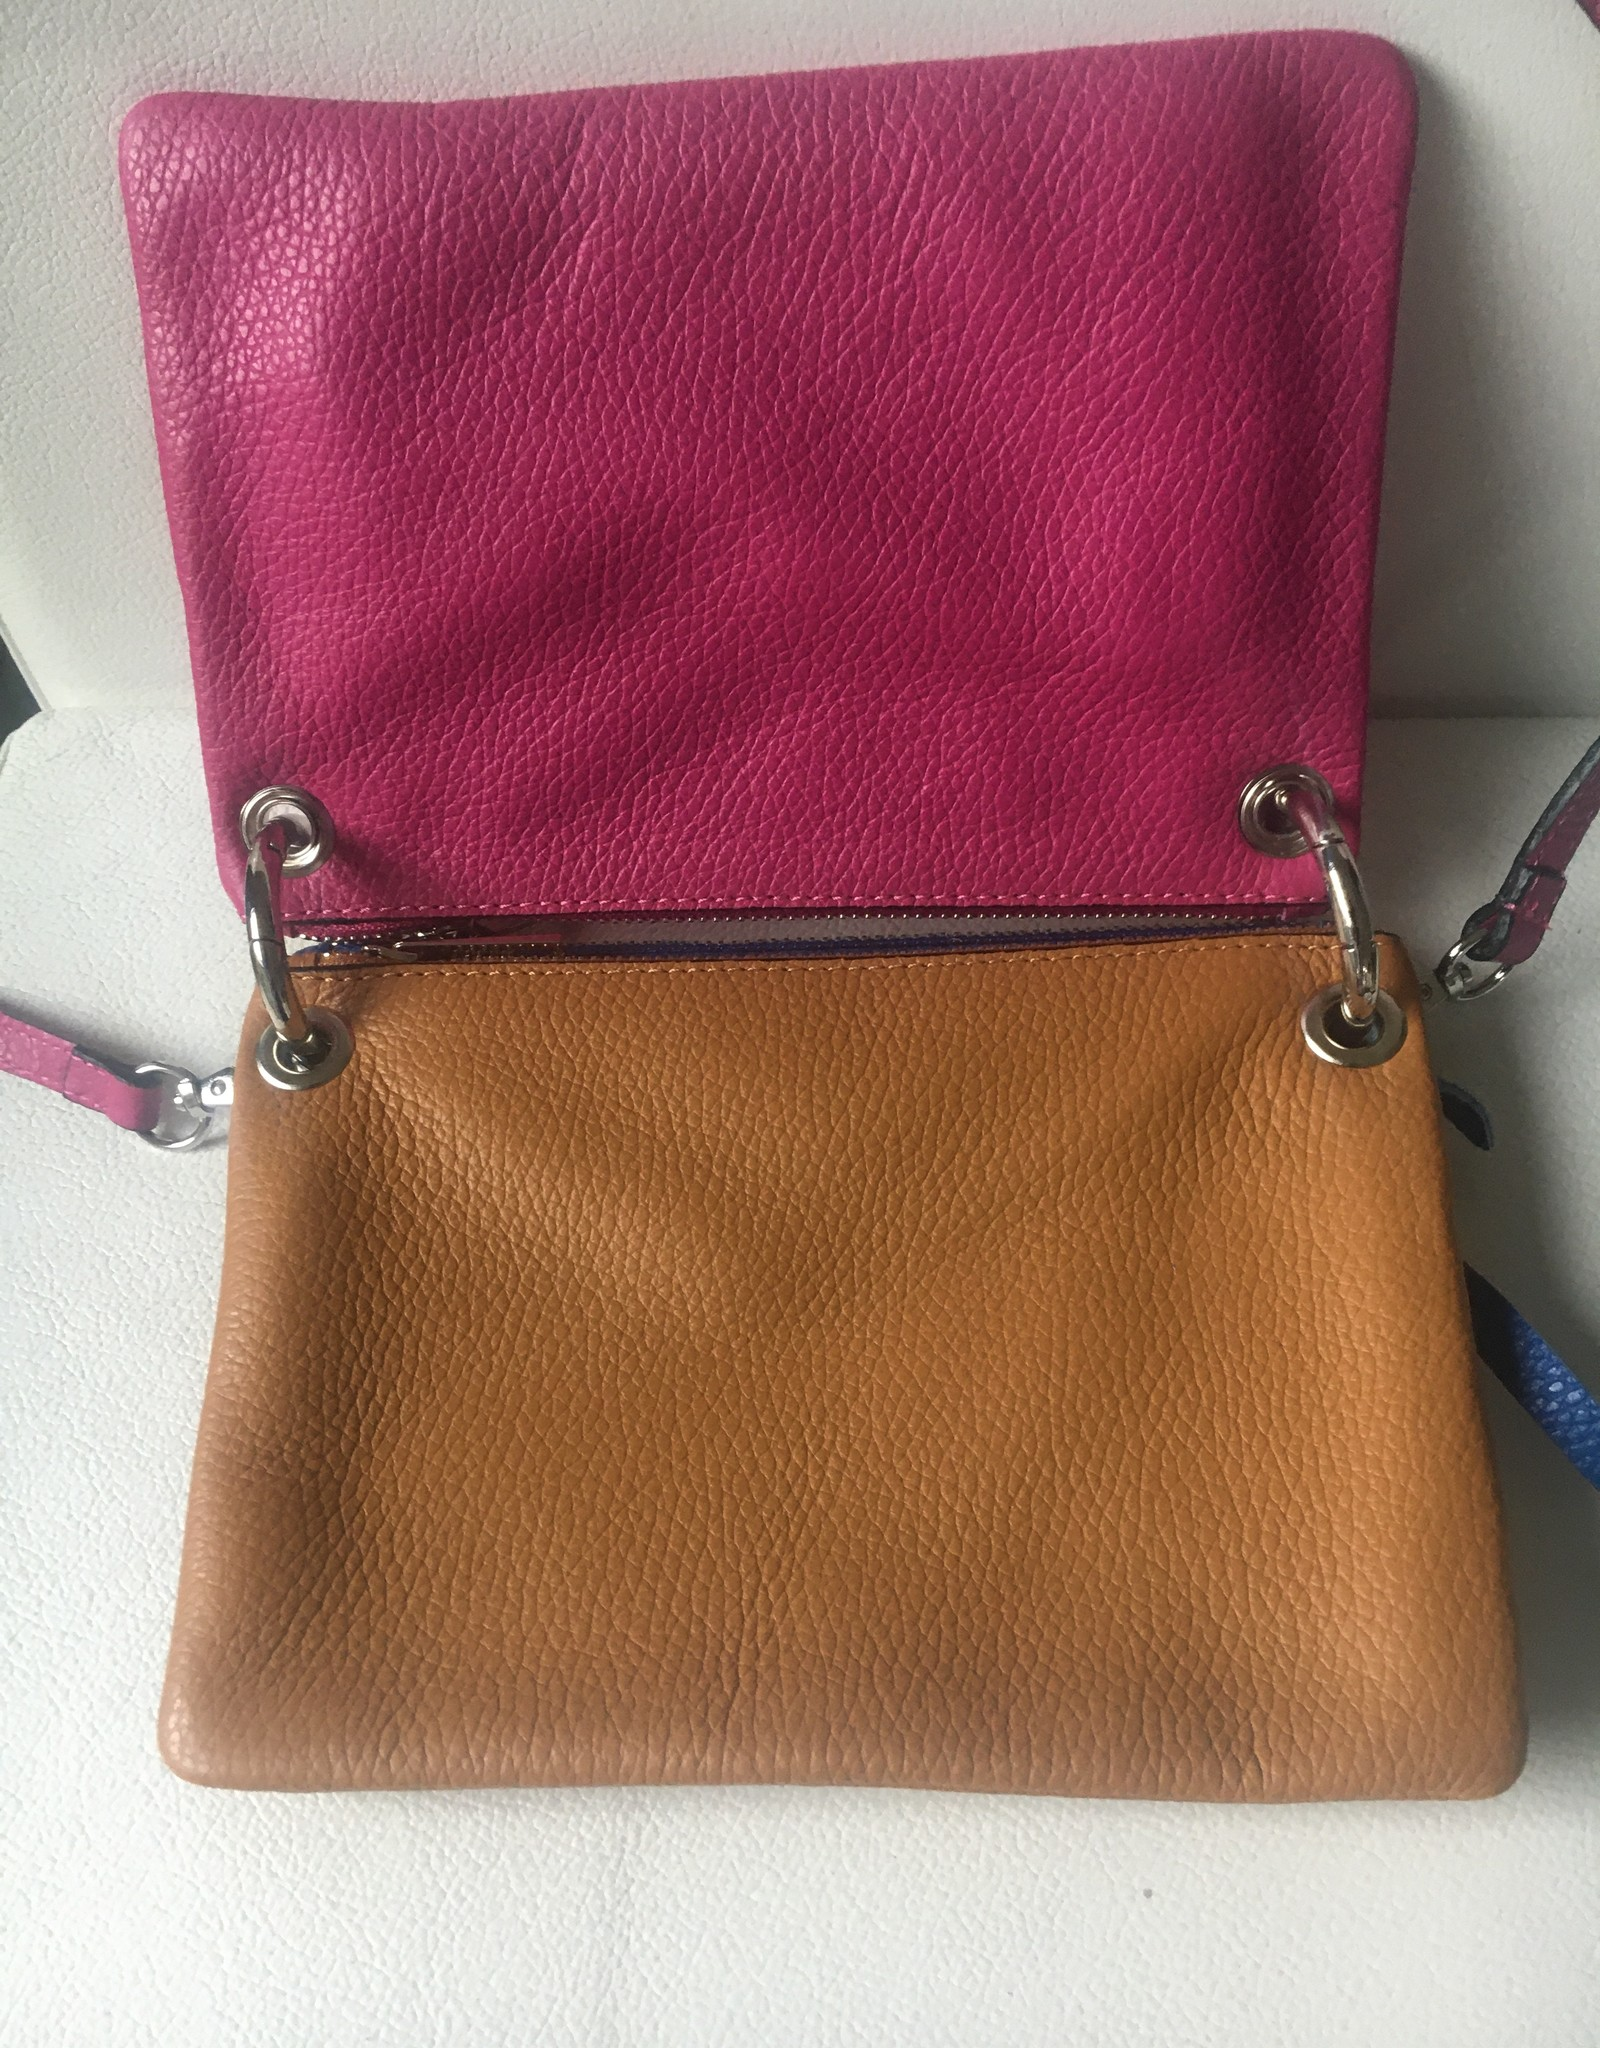 Leather bag 3 in 1